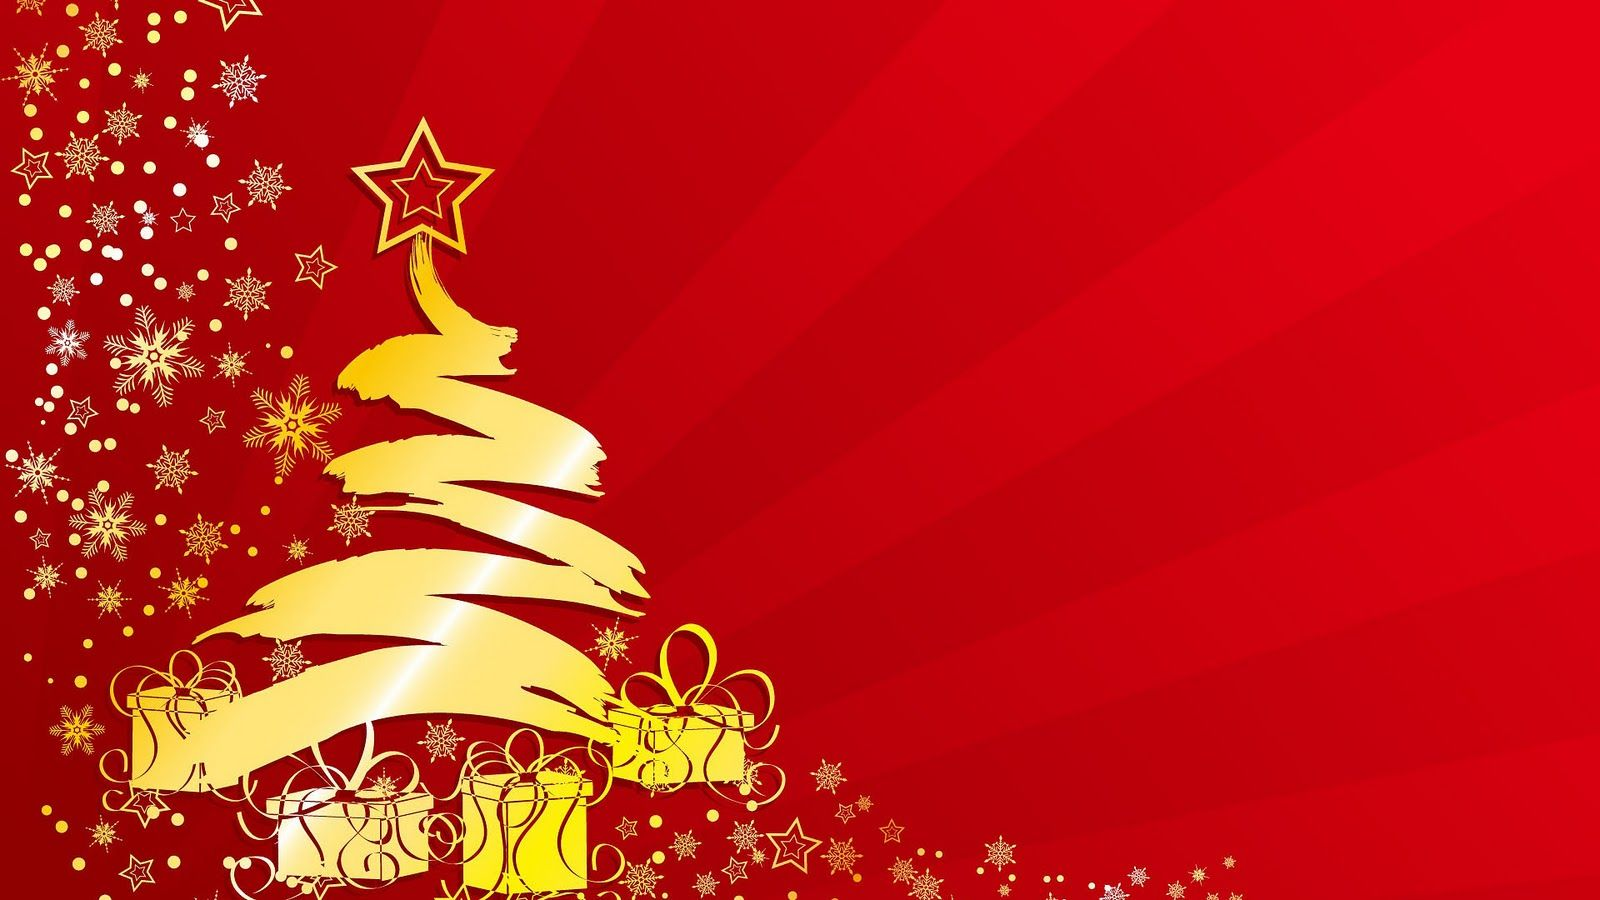 Christian Christmas.Beautiful Christian Christmas Desktop Wallpapers Top Free